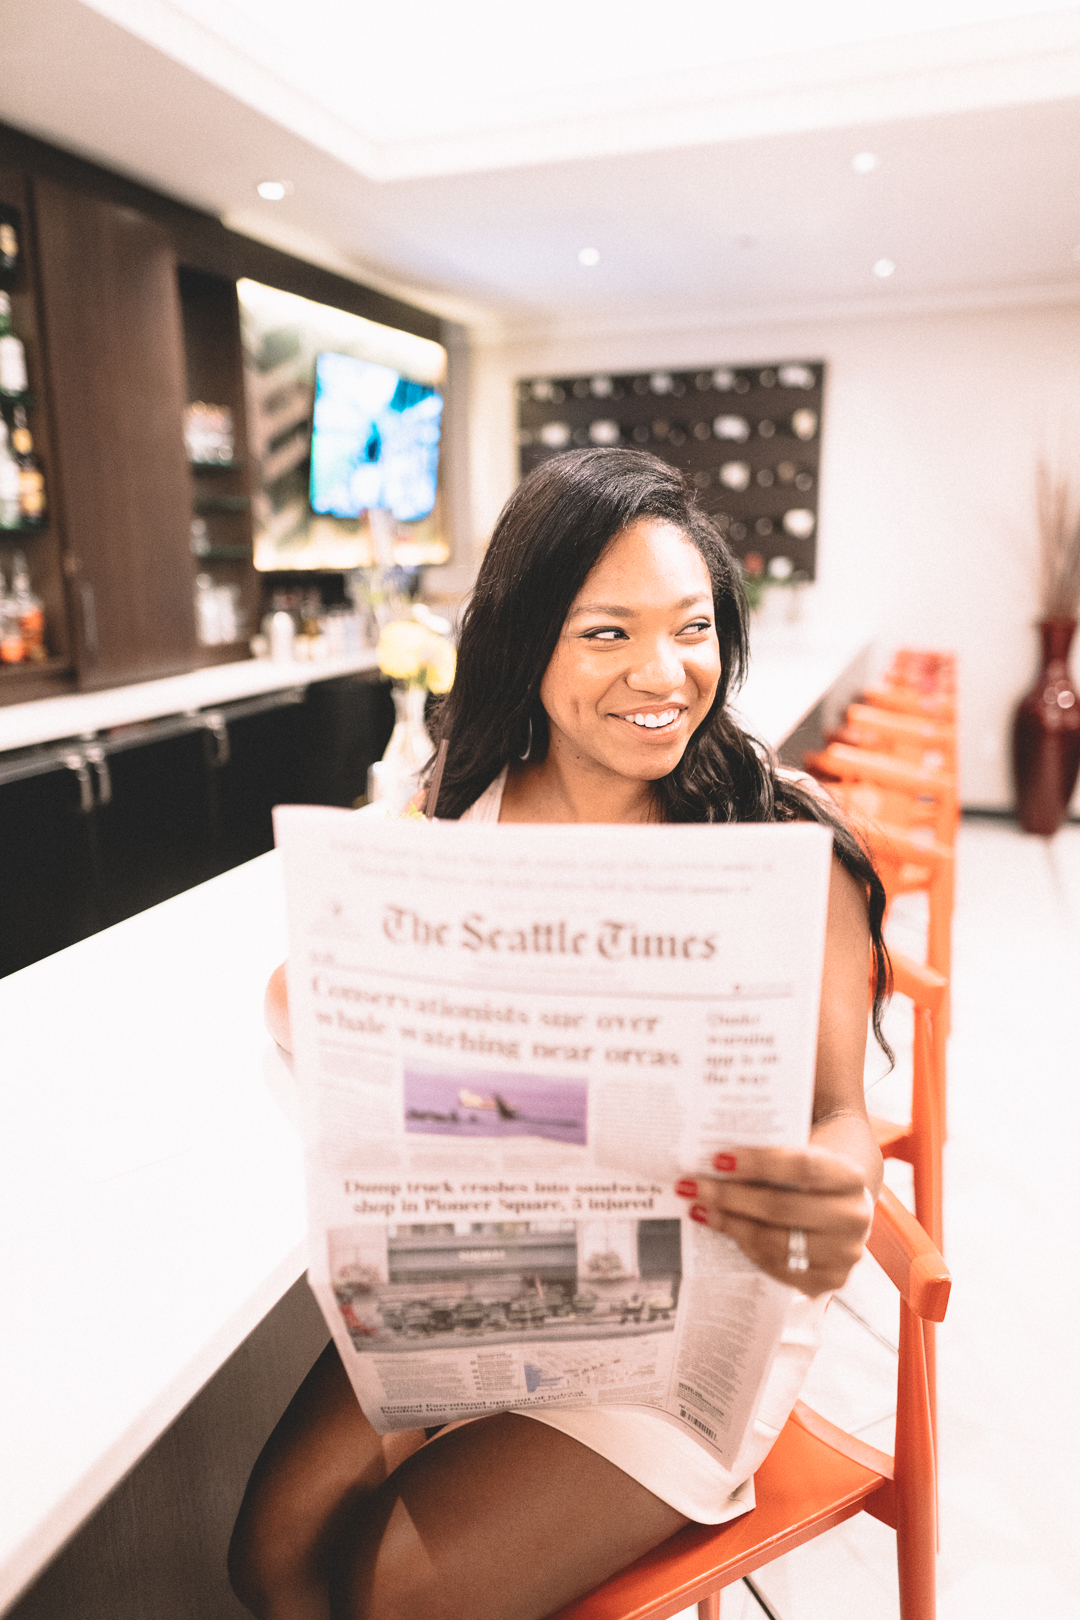 A Guide To The Best Hilton Hotels in Seattle